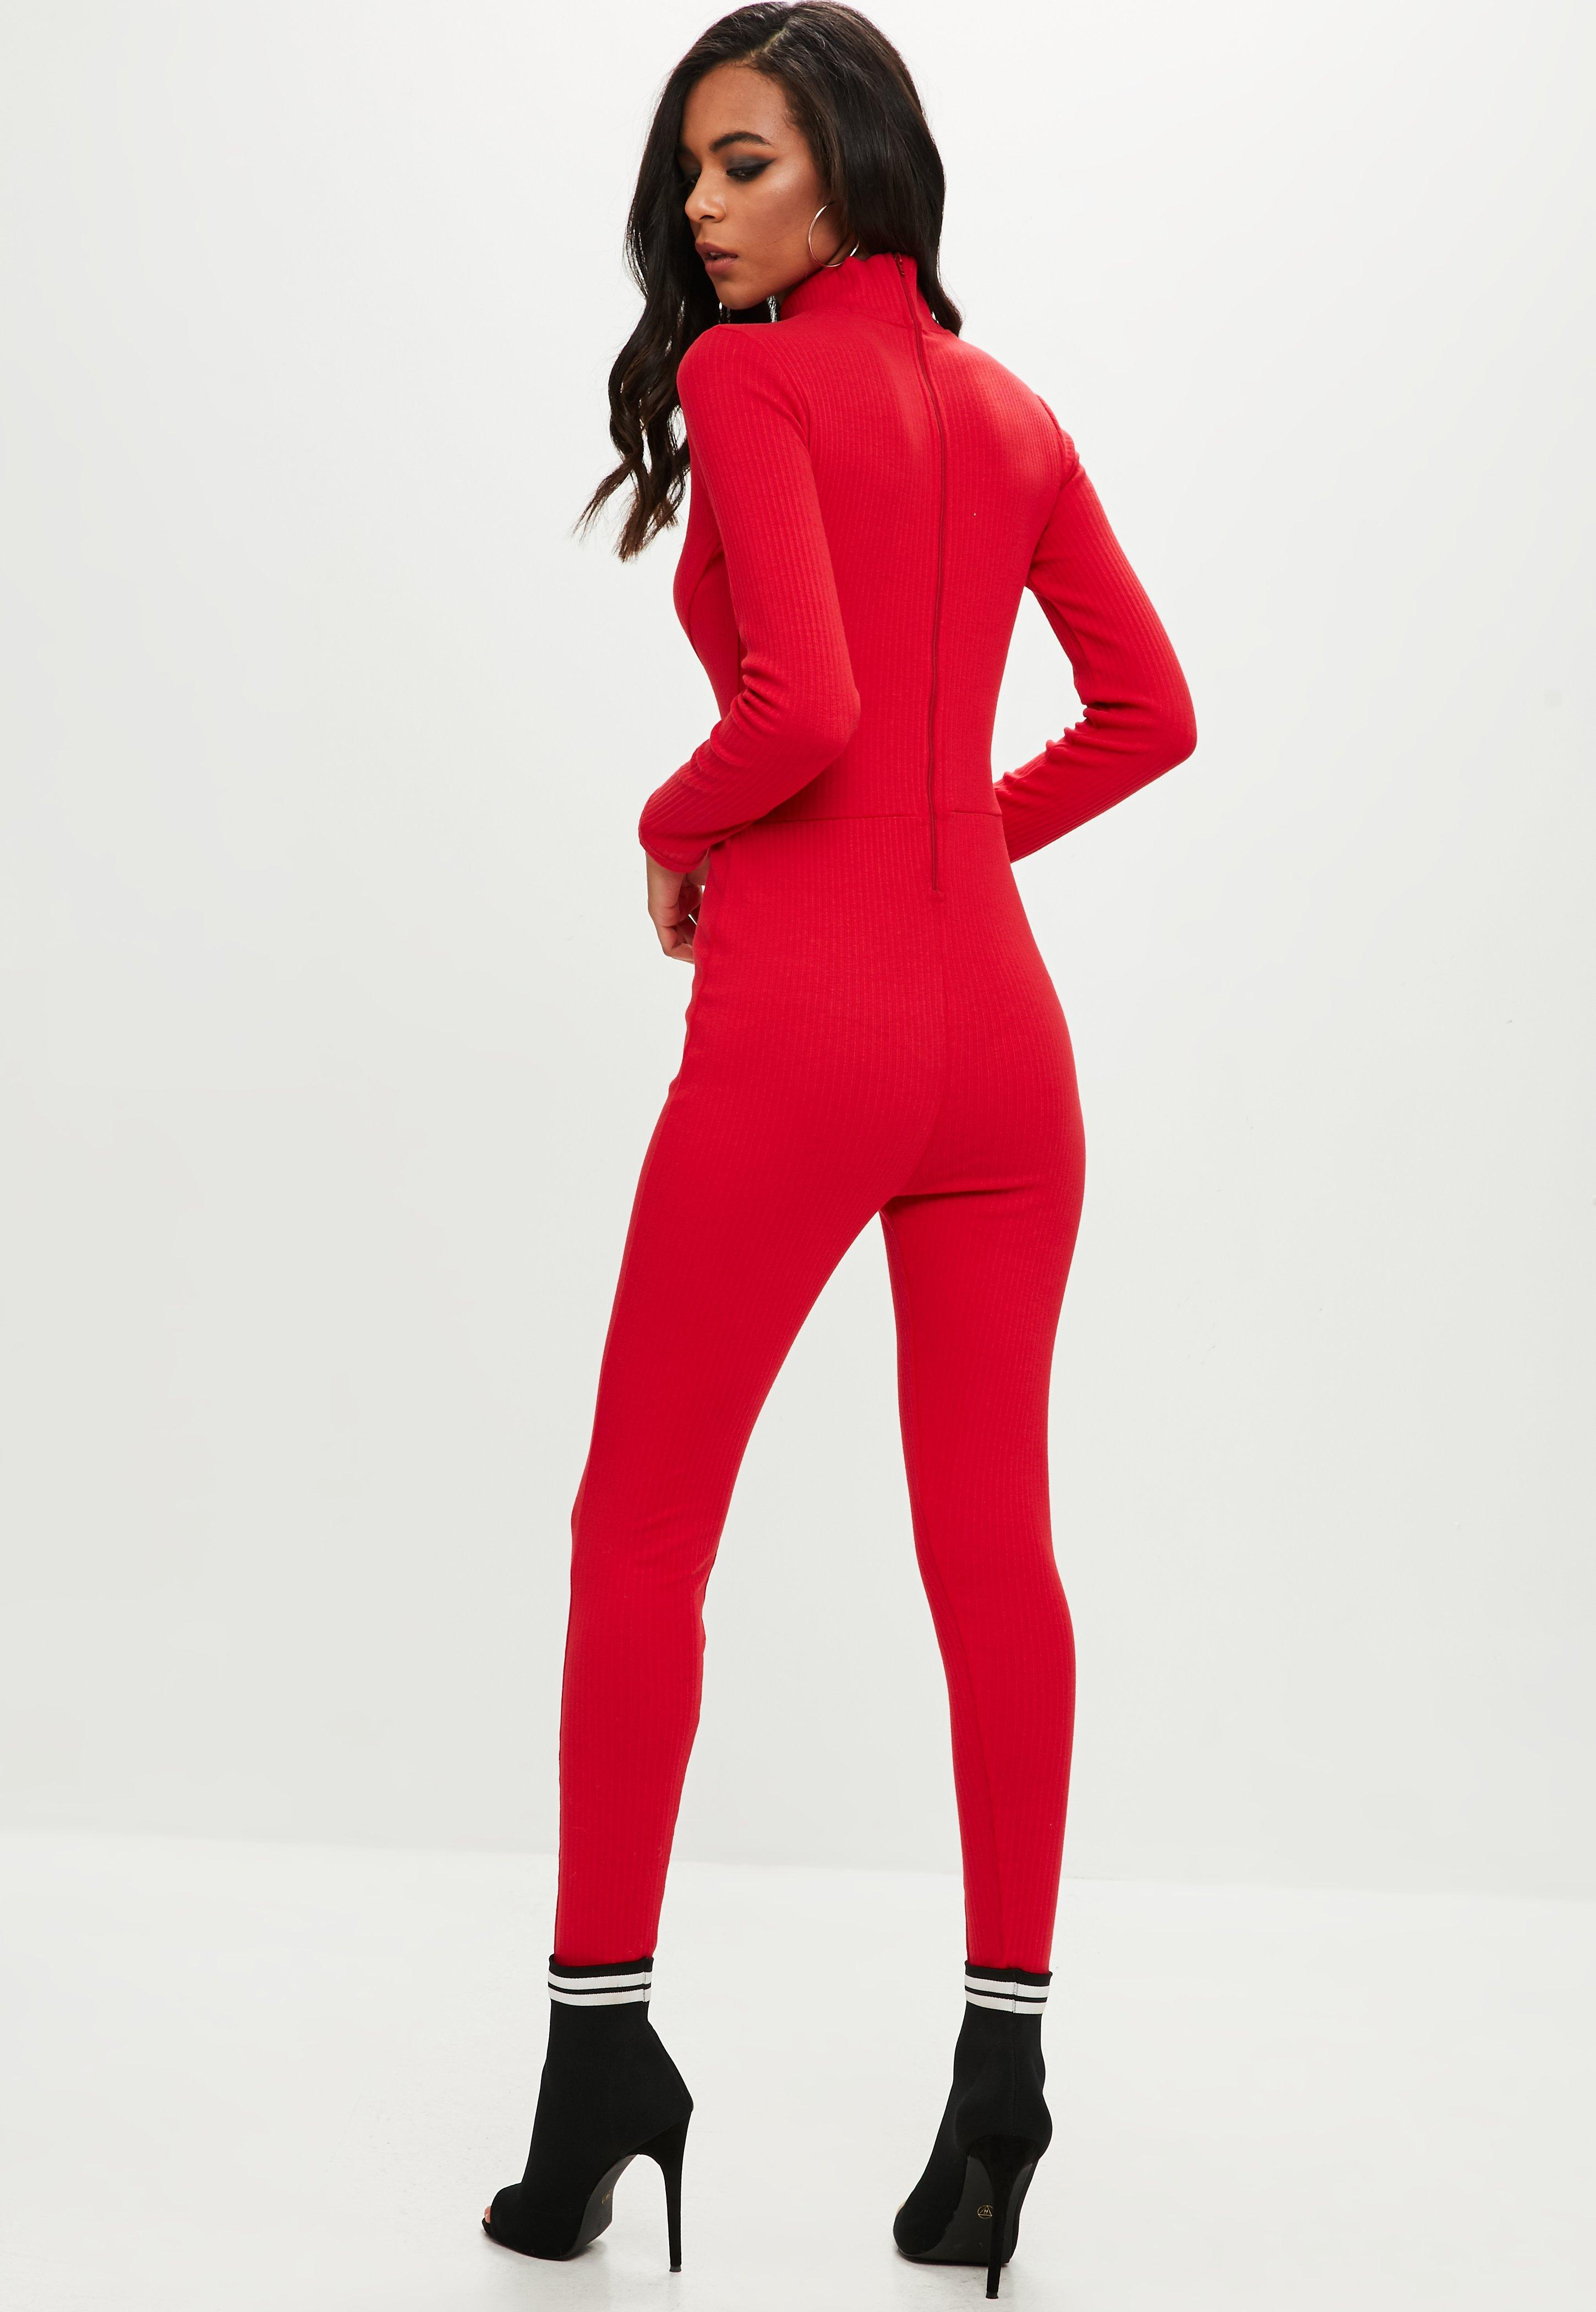 46cd89c20259 Lyst - Missguided Red Ribbed High Neck Jumpsuit in Red